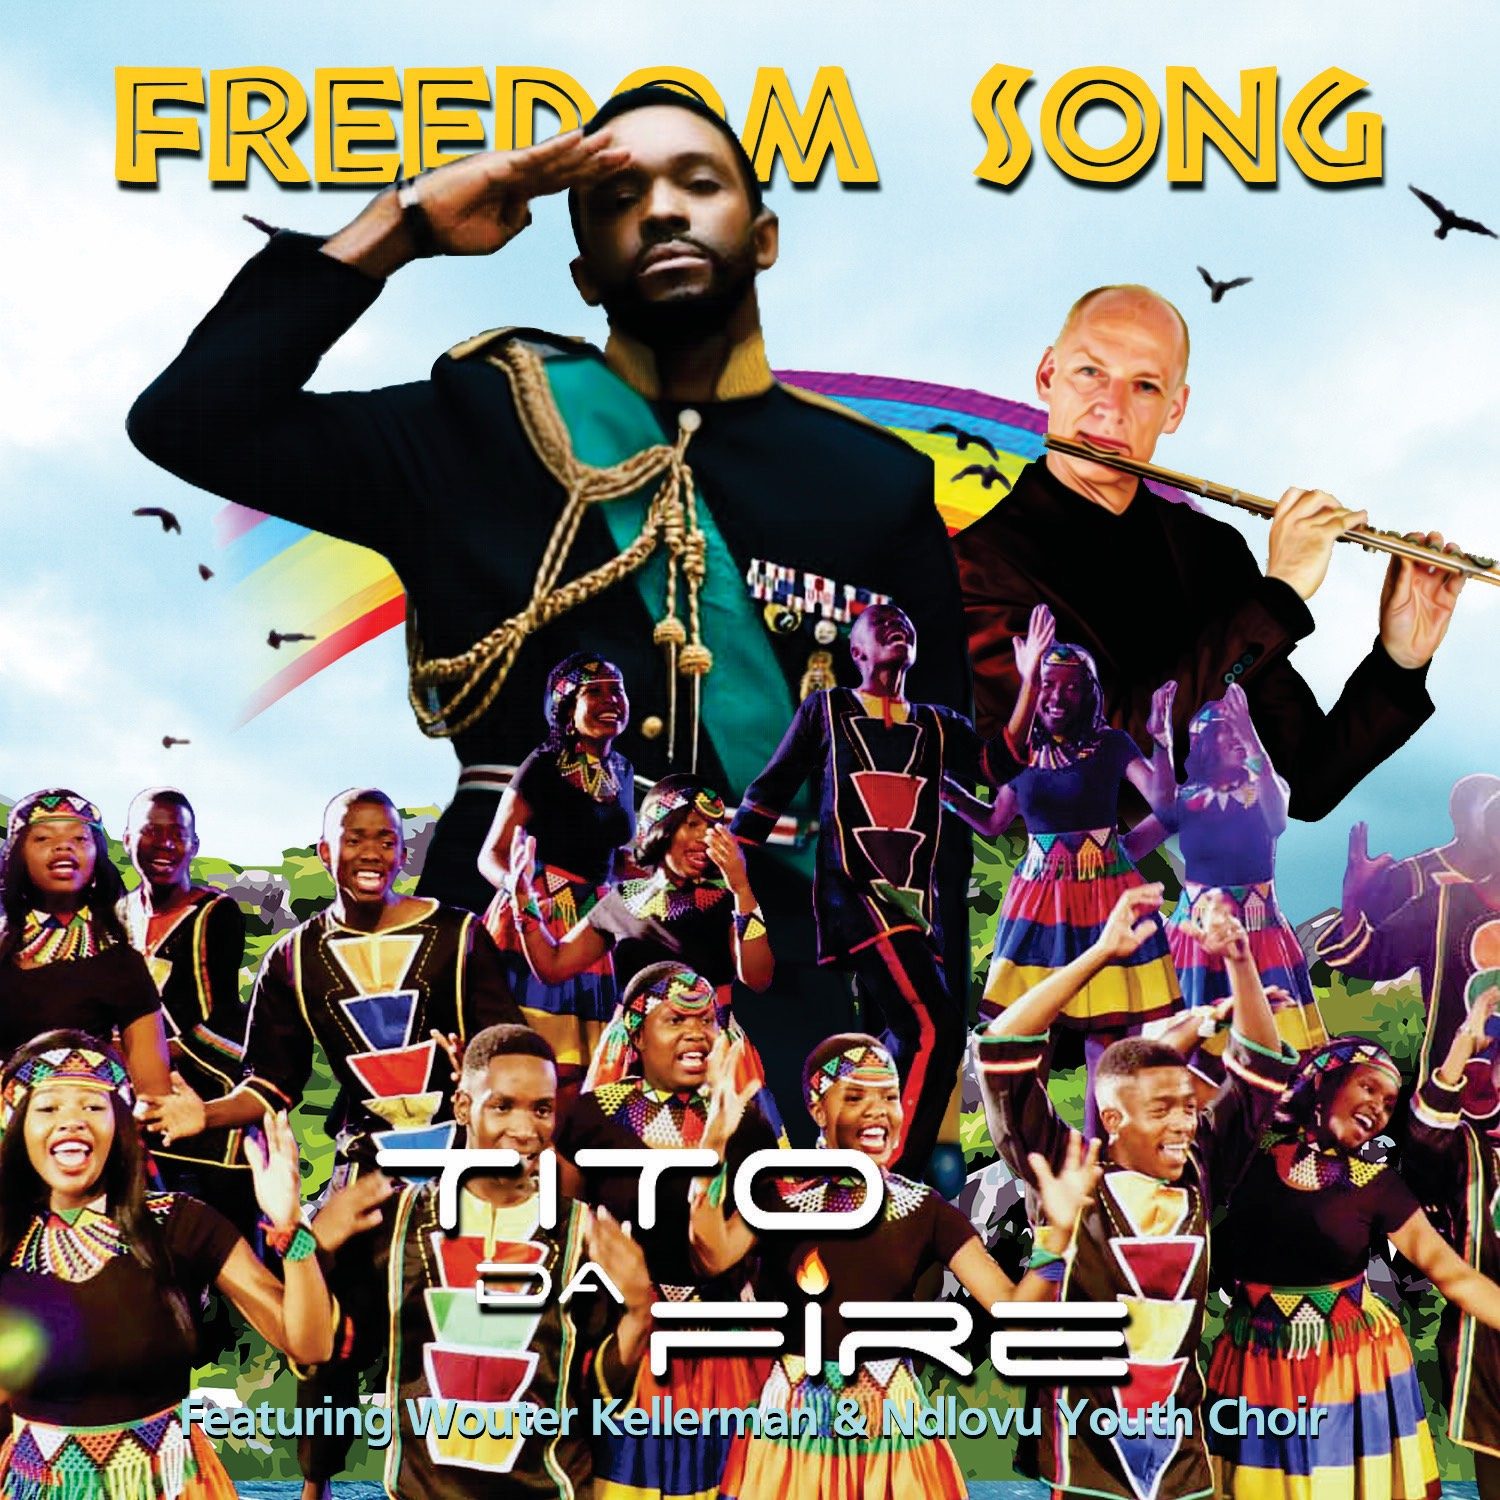 Tito Da.Fire – Freedom Song ft. Wouter Kellerman & Ndlovu Youth Choir